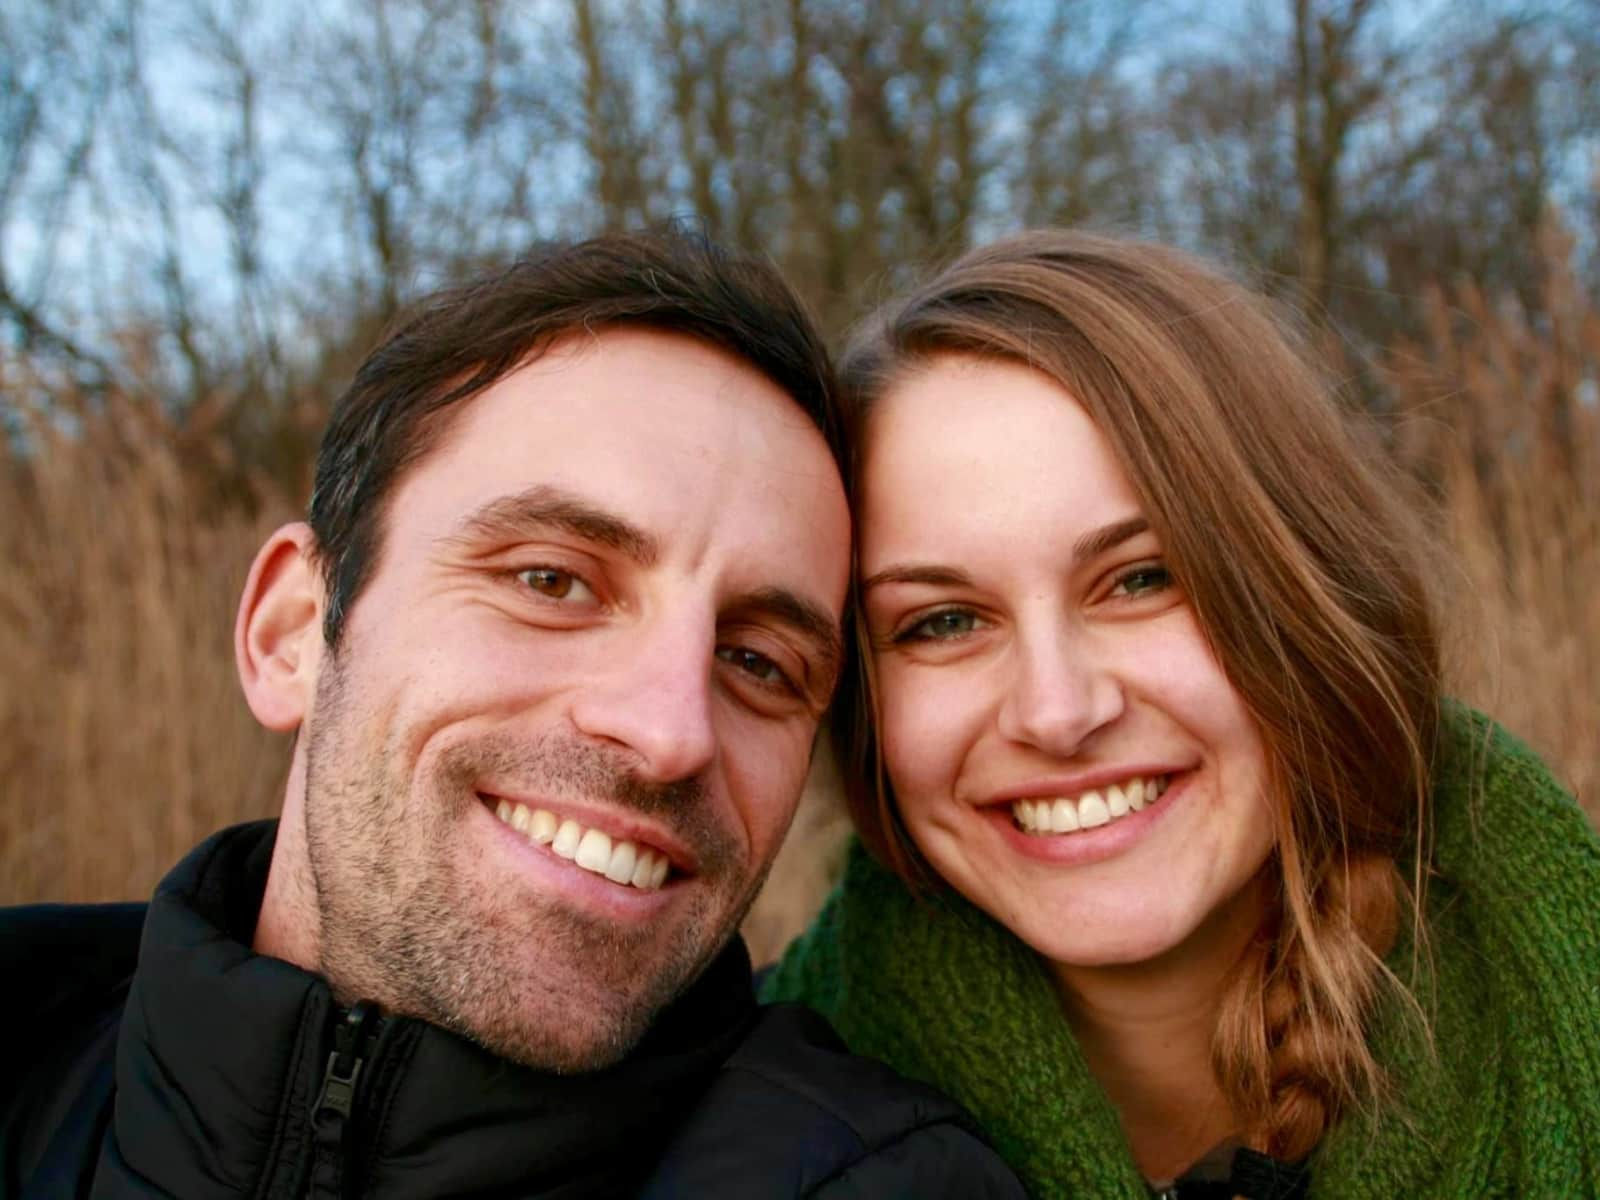 Katherine & Marc from Munich, Germany